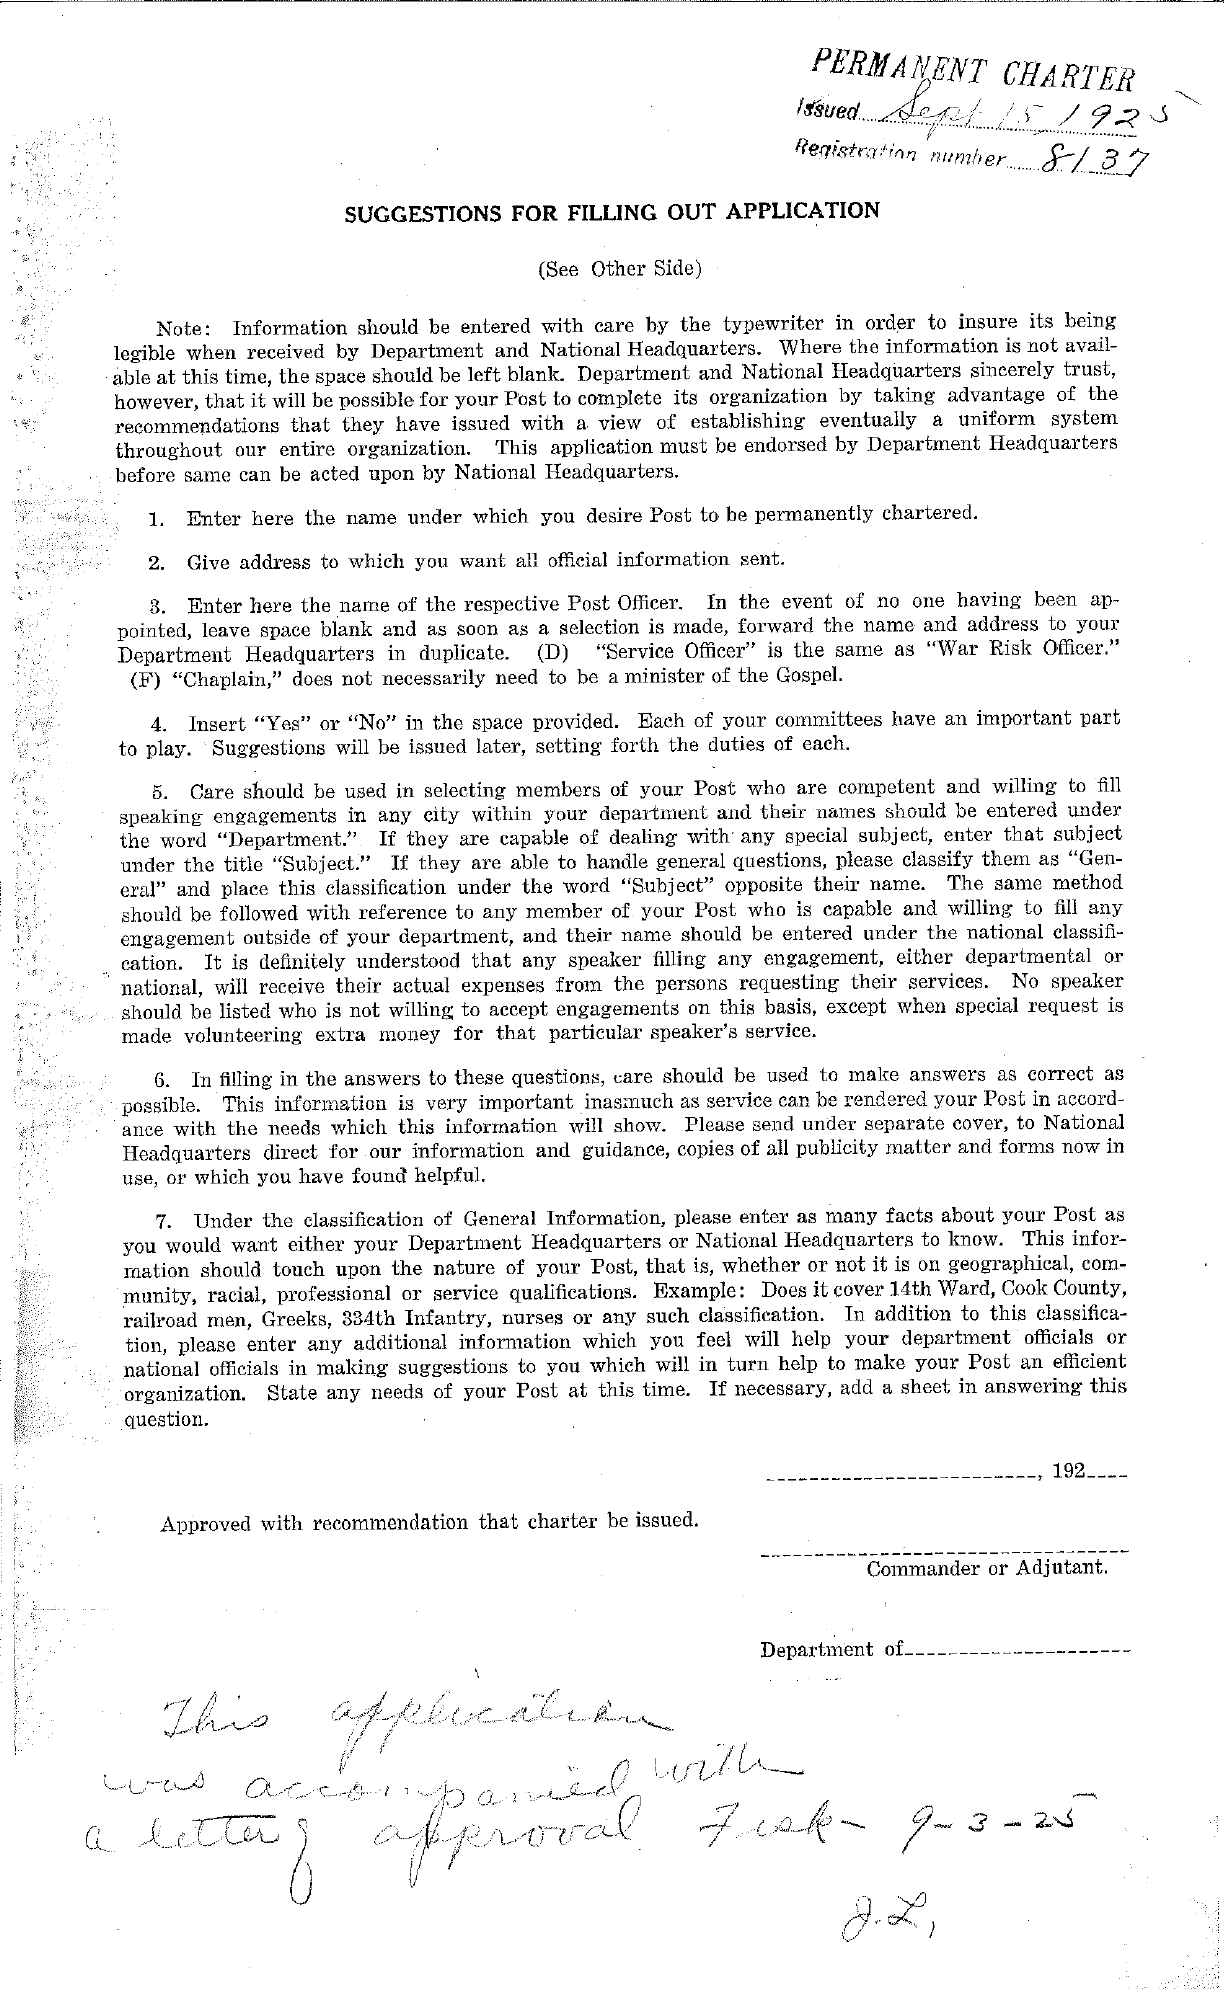 Post 149: Post Application for Permanent Charter September 15, 1925 - Page 2